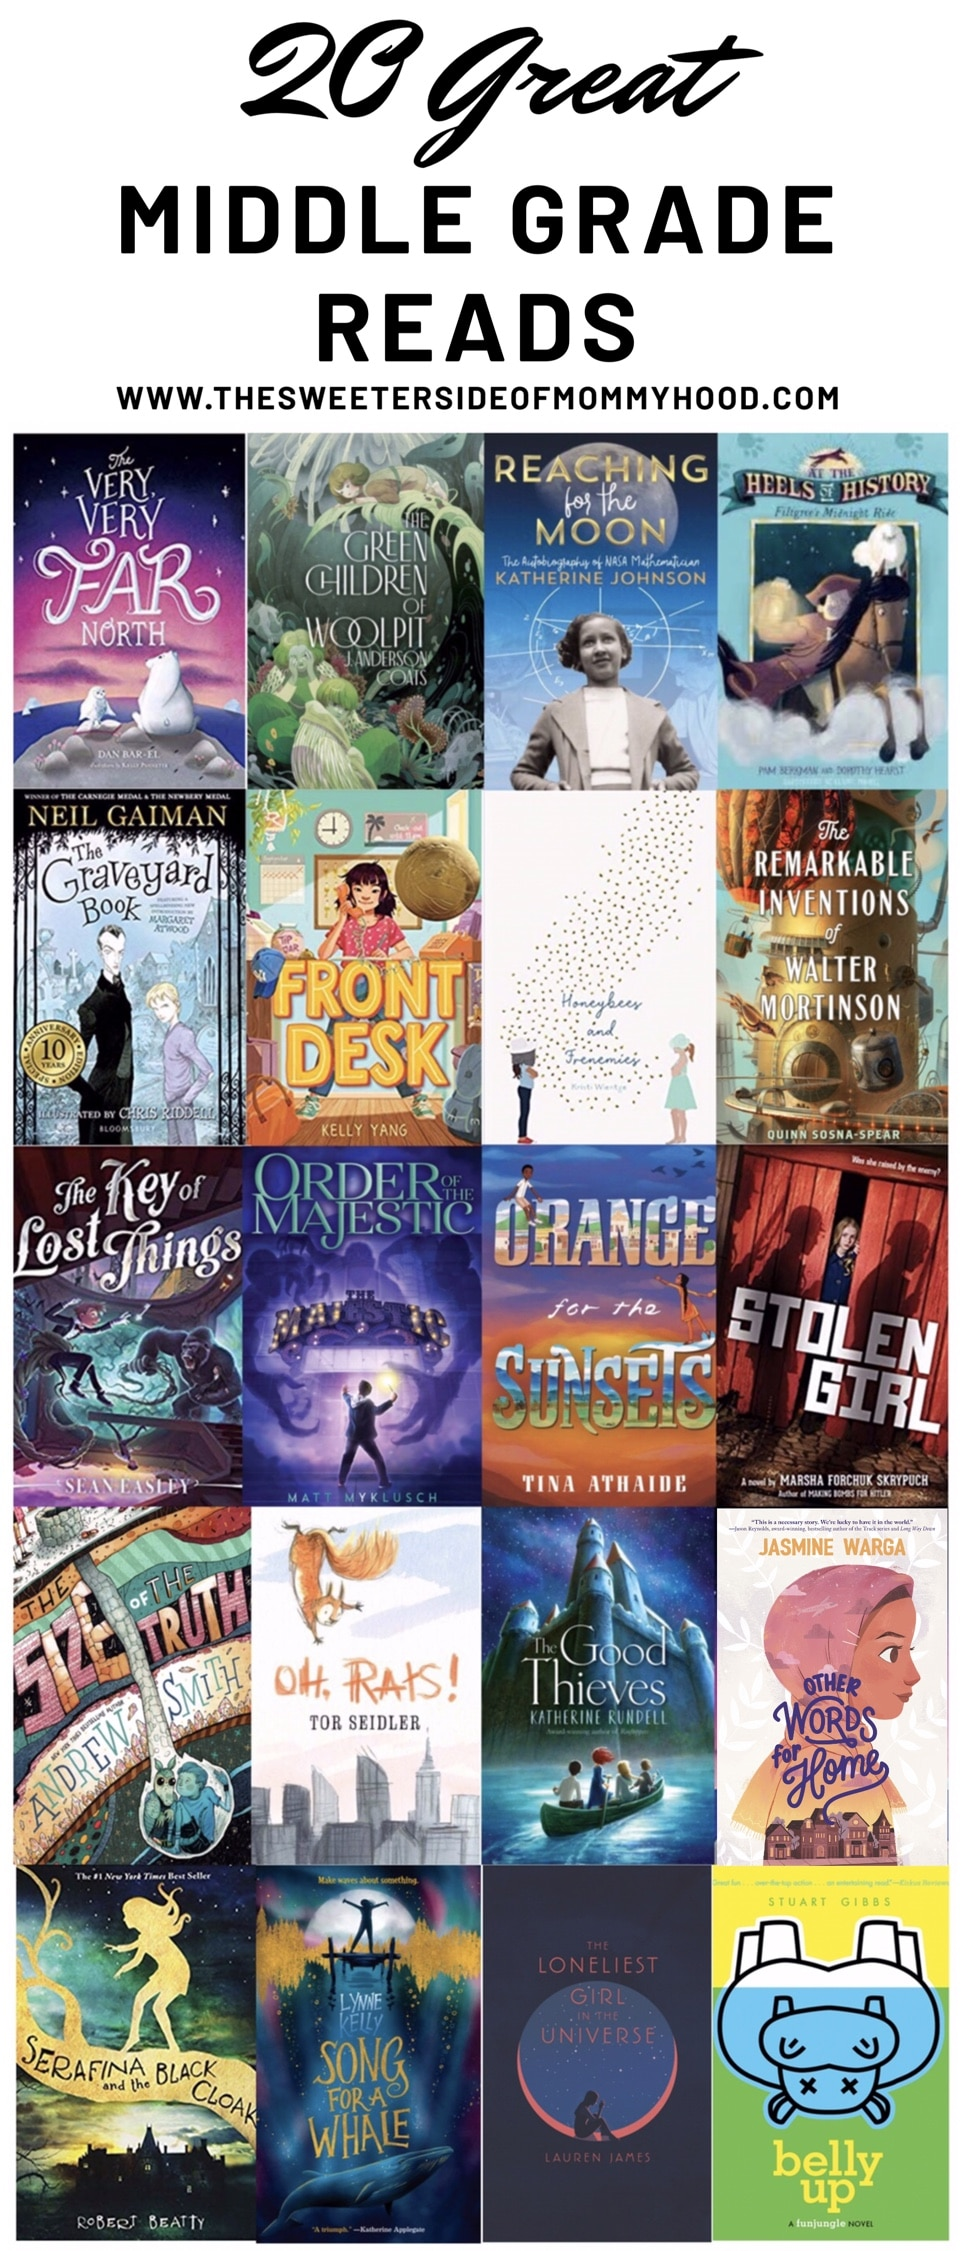 20 Great Middle Grade Reads